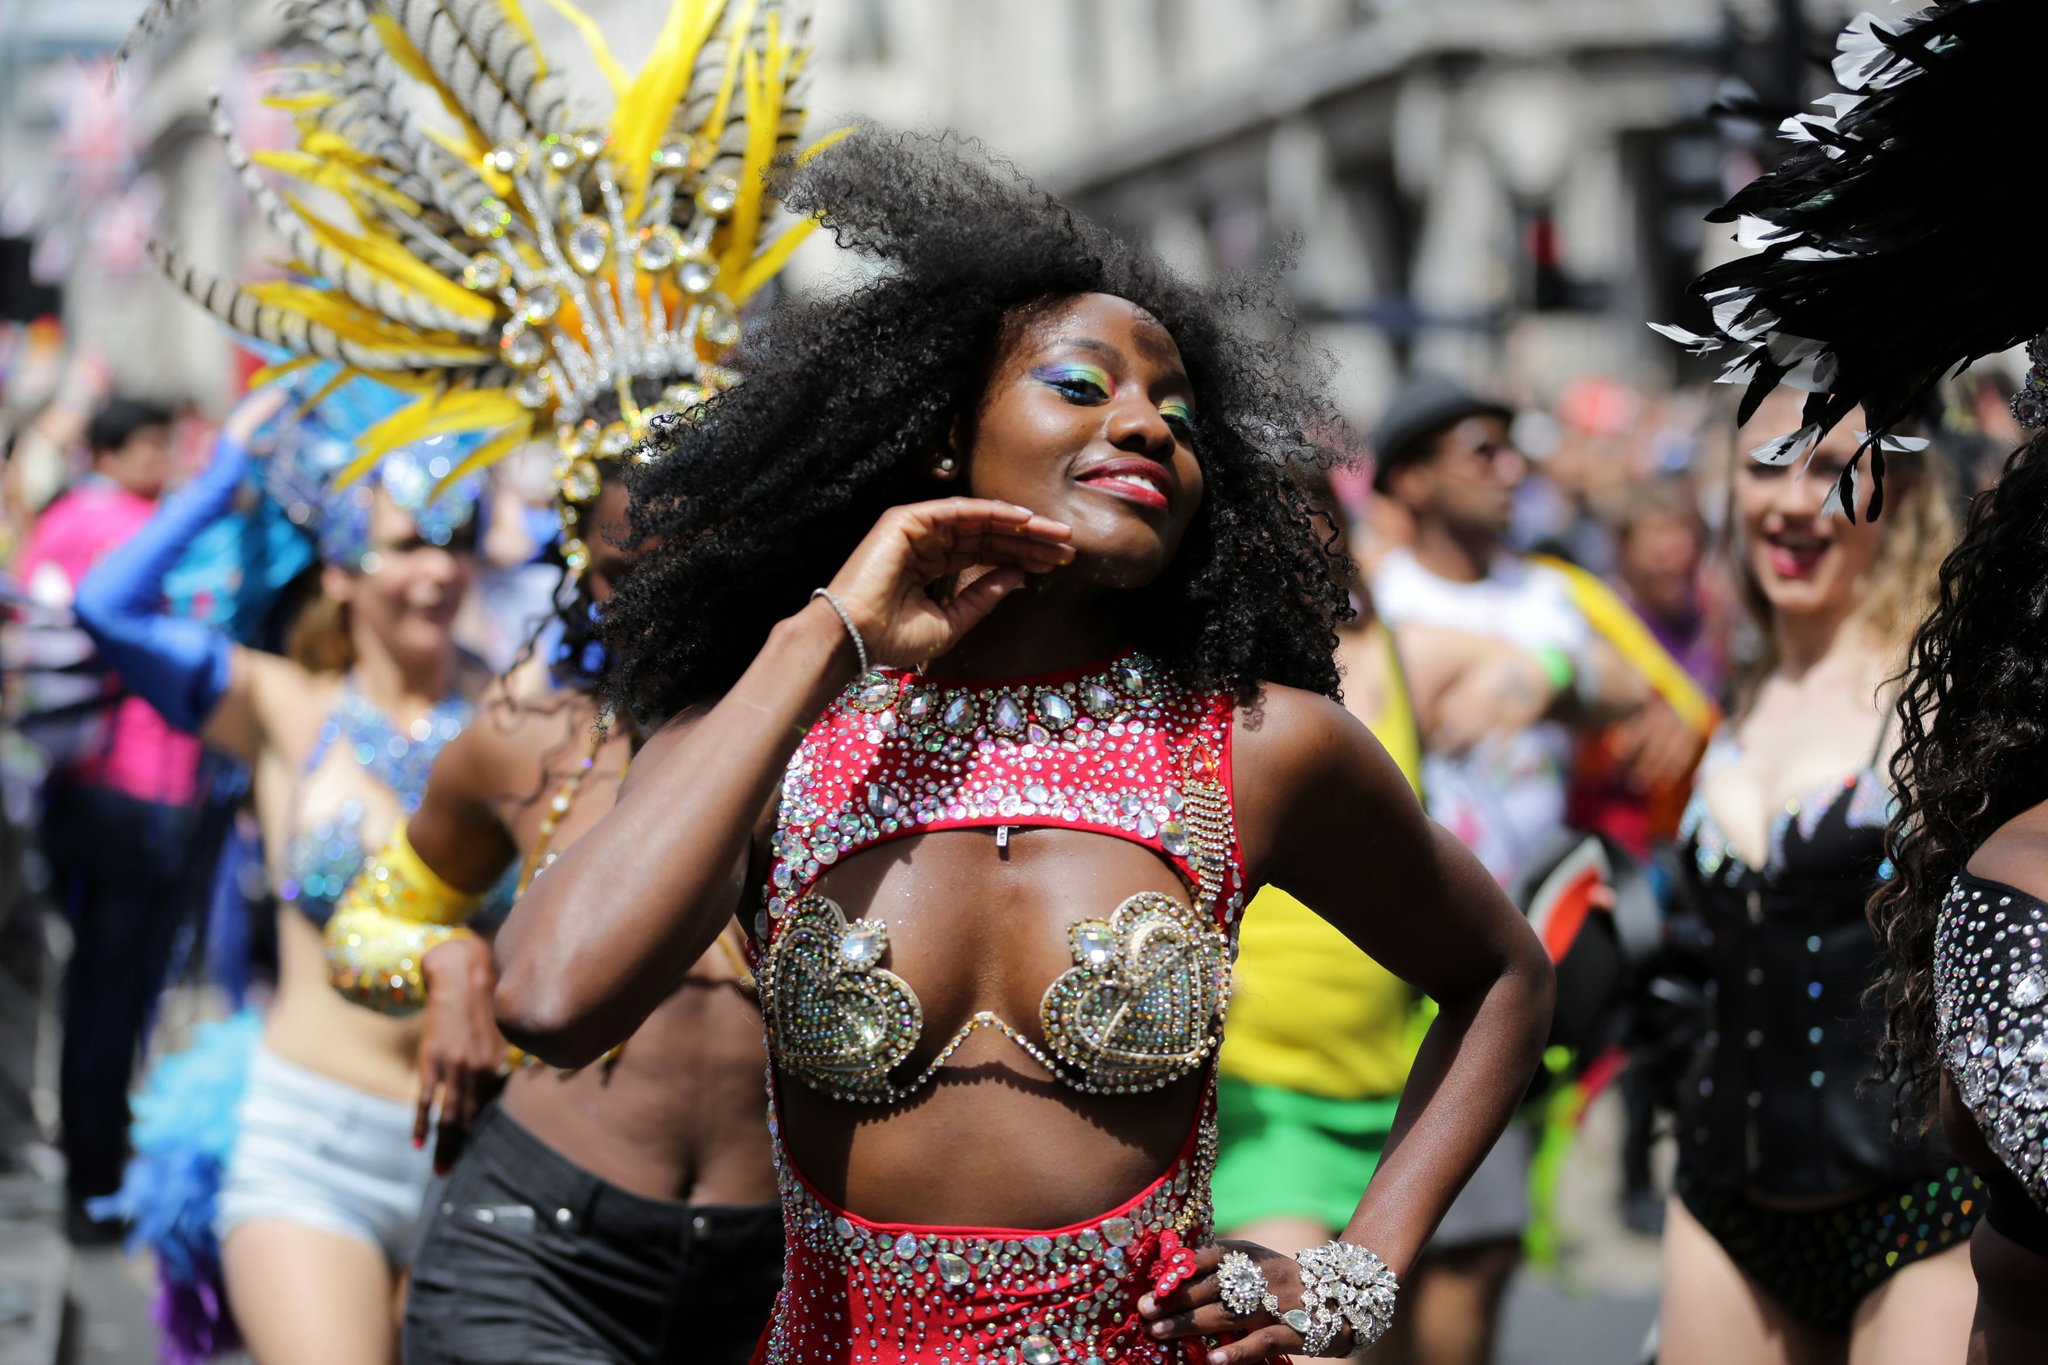 A dancer performing during the Pride in London parade, as it makes its way through the streets of central, London. PRESS ASSOCIATION Photo. Picture date: Saturday June 25, 2016. See PA story POLICE Pride. Photo credit should read: Daniel Leal-Olivas/PA Wire